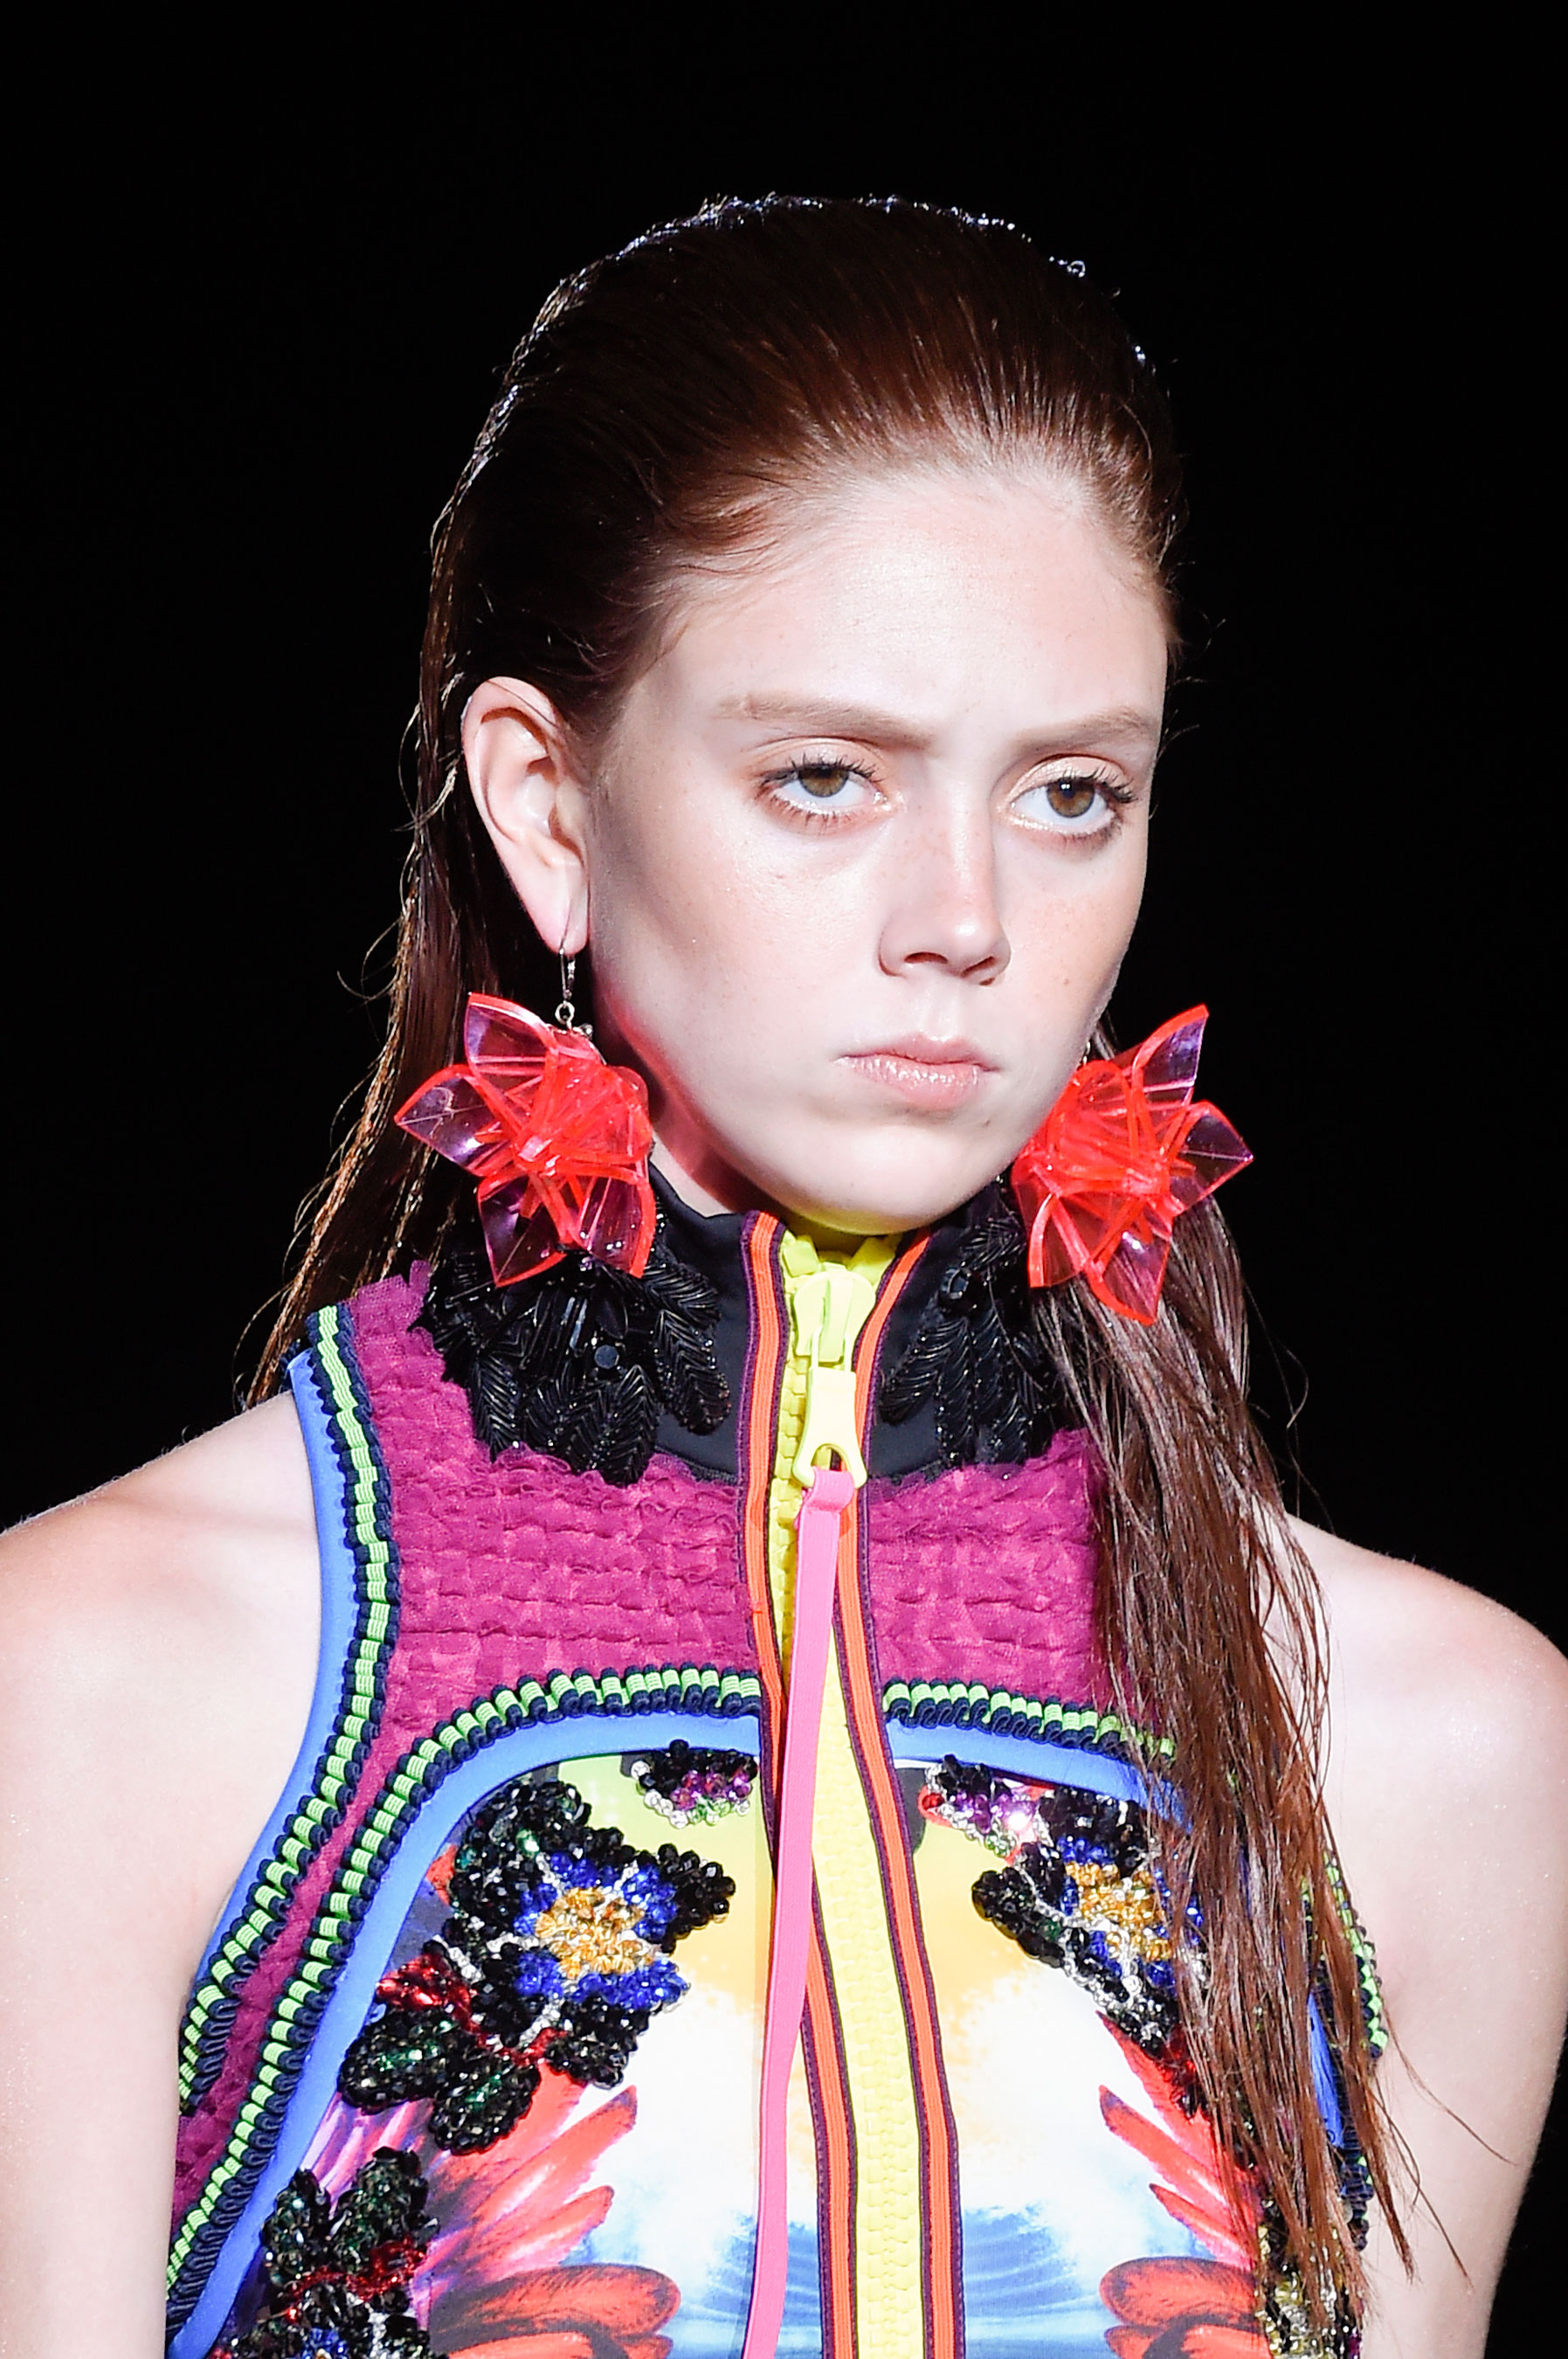 DSquared2-runway-beauty-spring-2016-fashion-show-the-impression-036